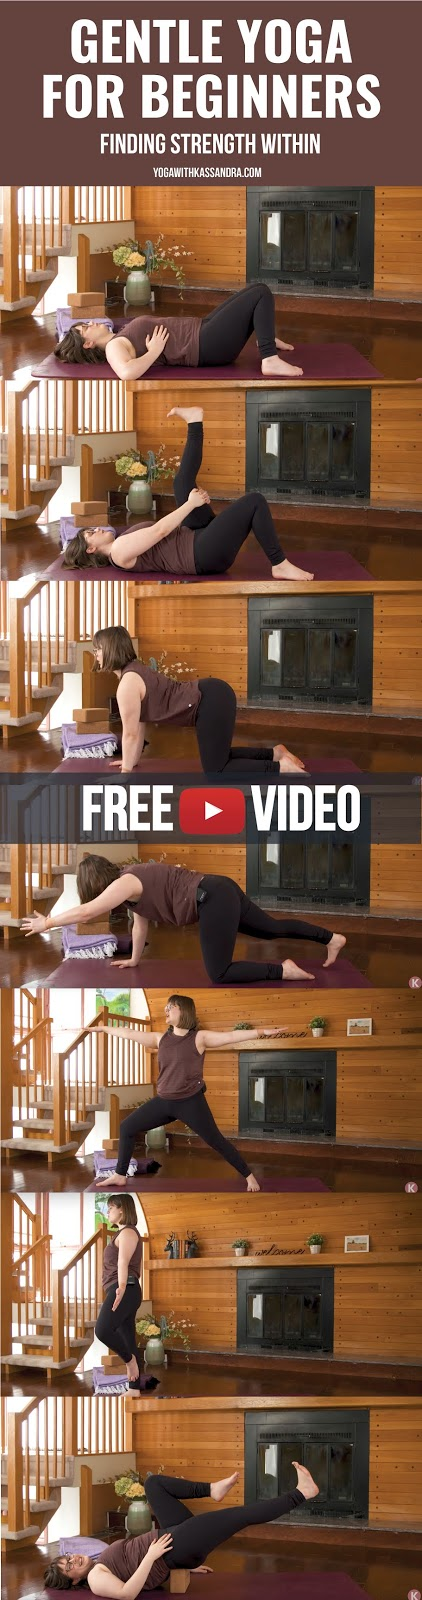 We are often stronger than we think we are, these poses will help you to tap into that. Guided by guest teacher Meghan Johnston this class explores some gentle movement on your mat.